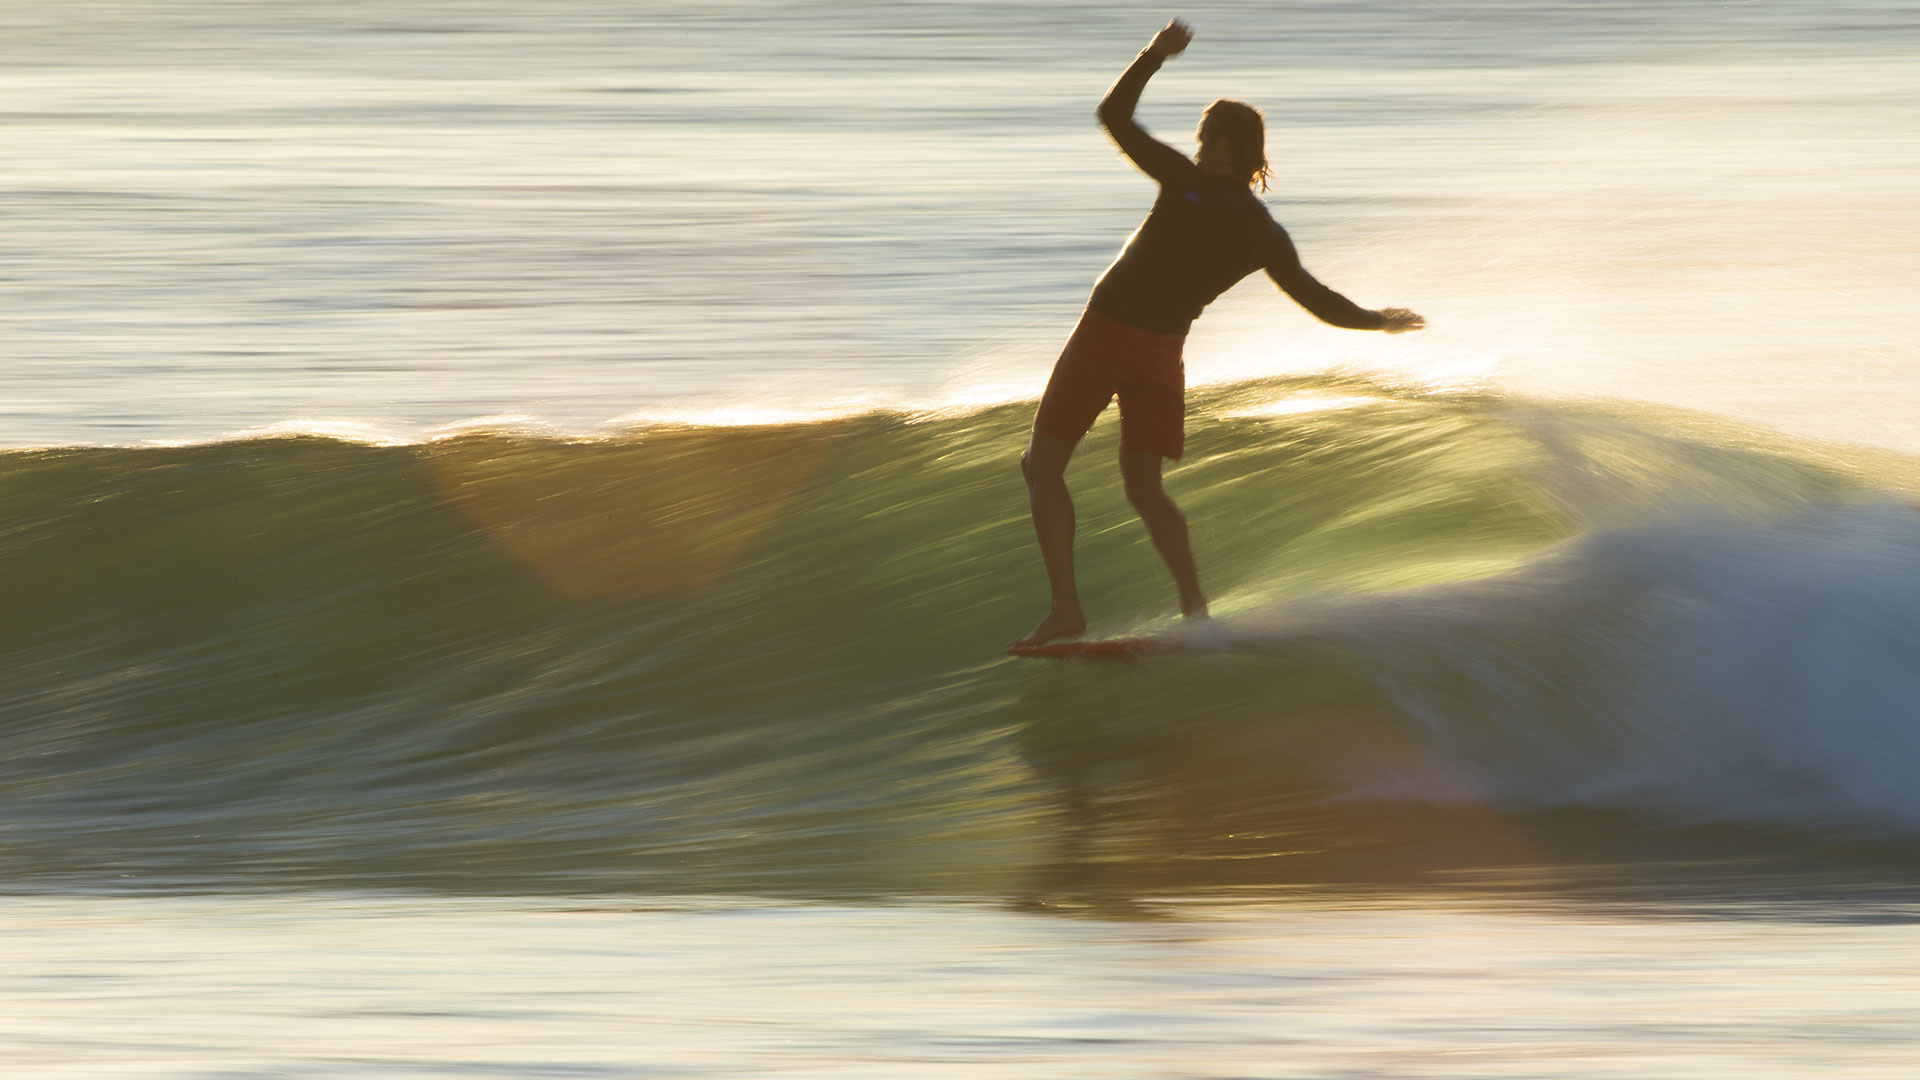 The 5 Most Pivotal Moments of the Decade in Longboarding - SURFER Magazine